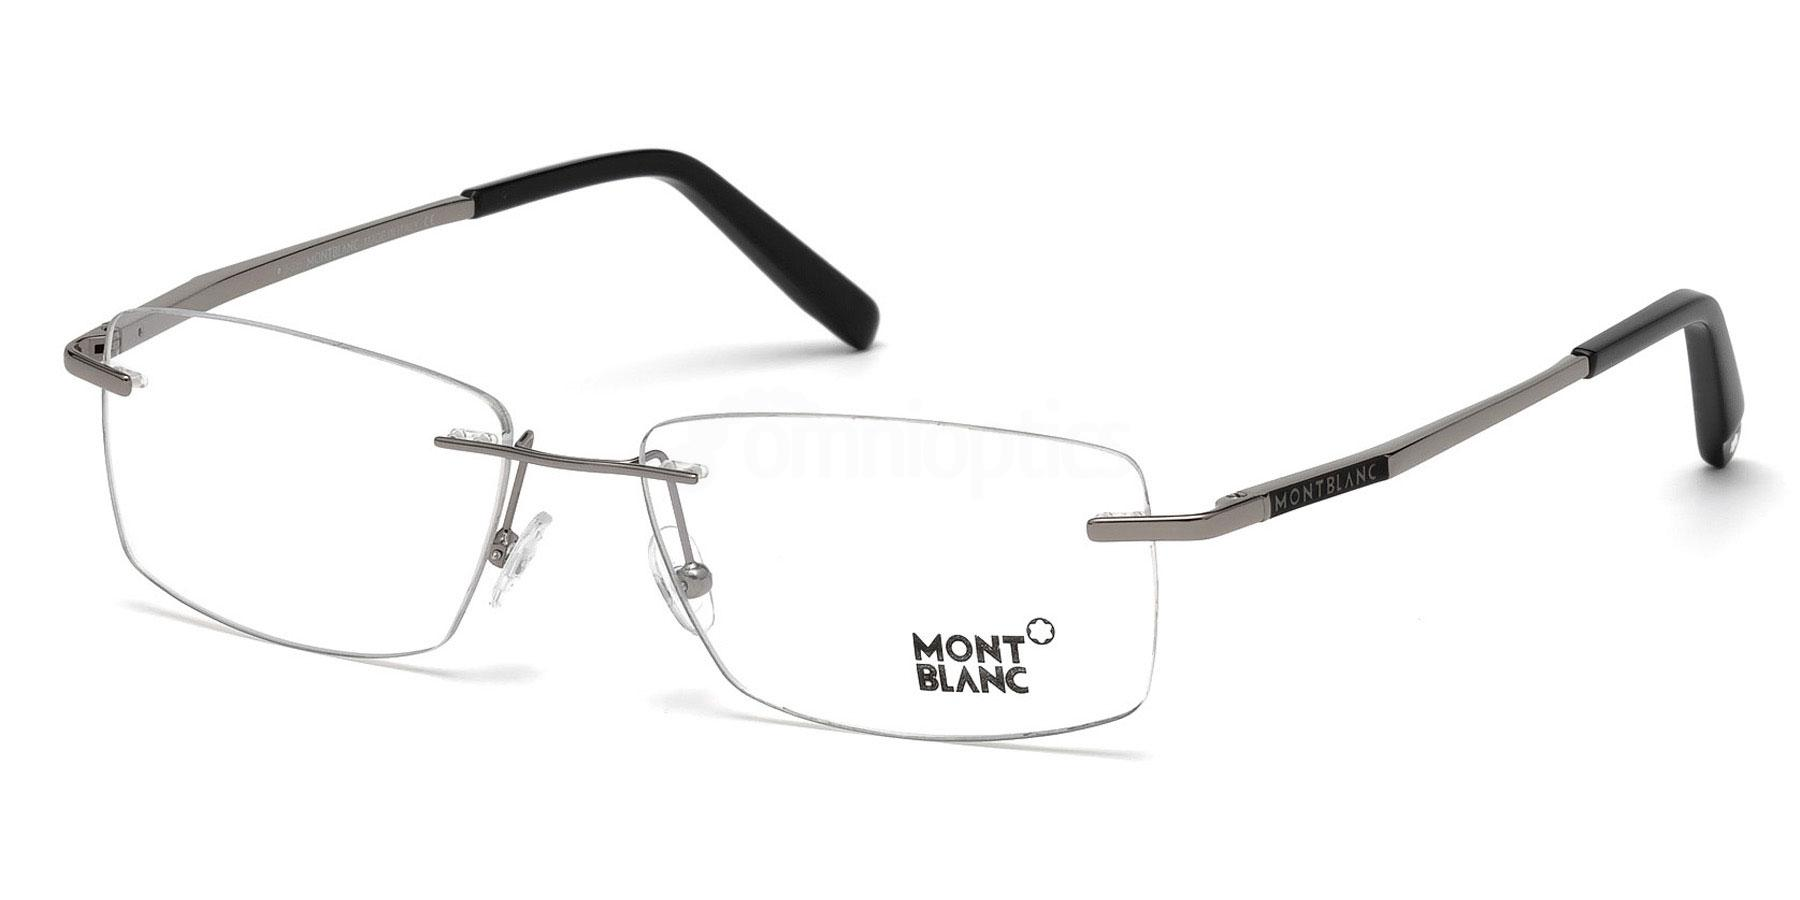 014 MB0670 Glasses, Mont Blanc